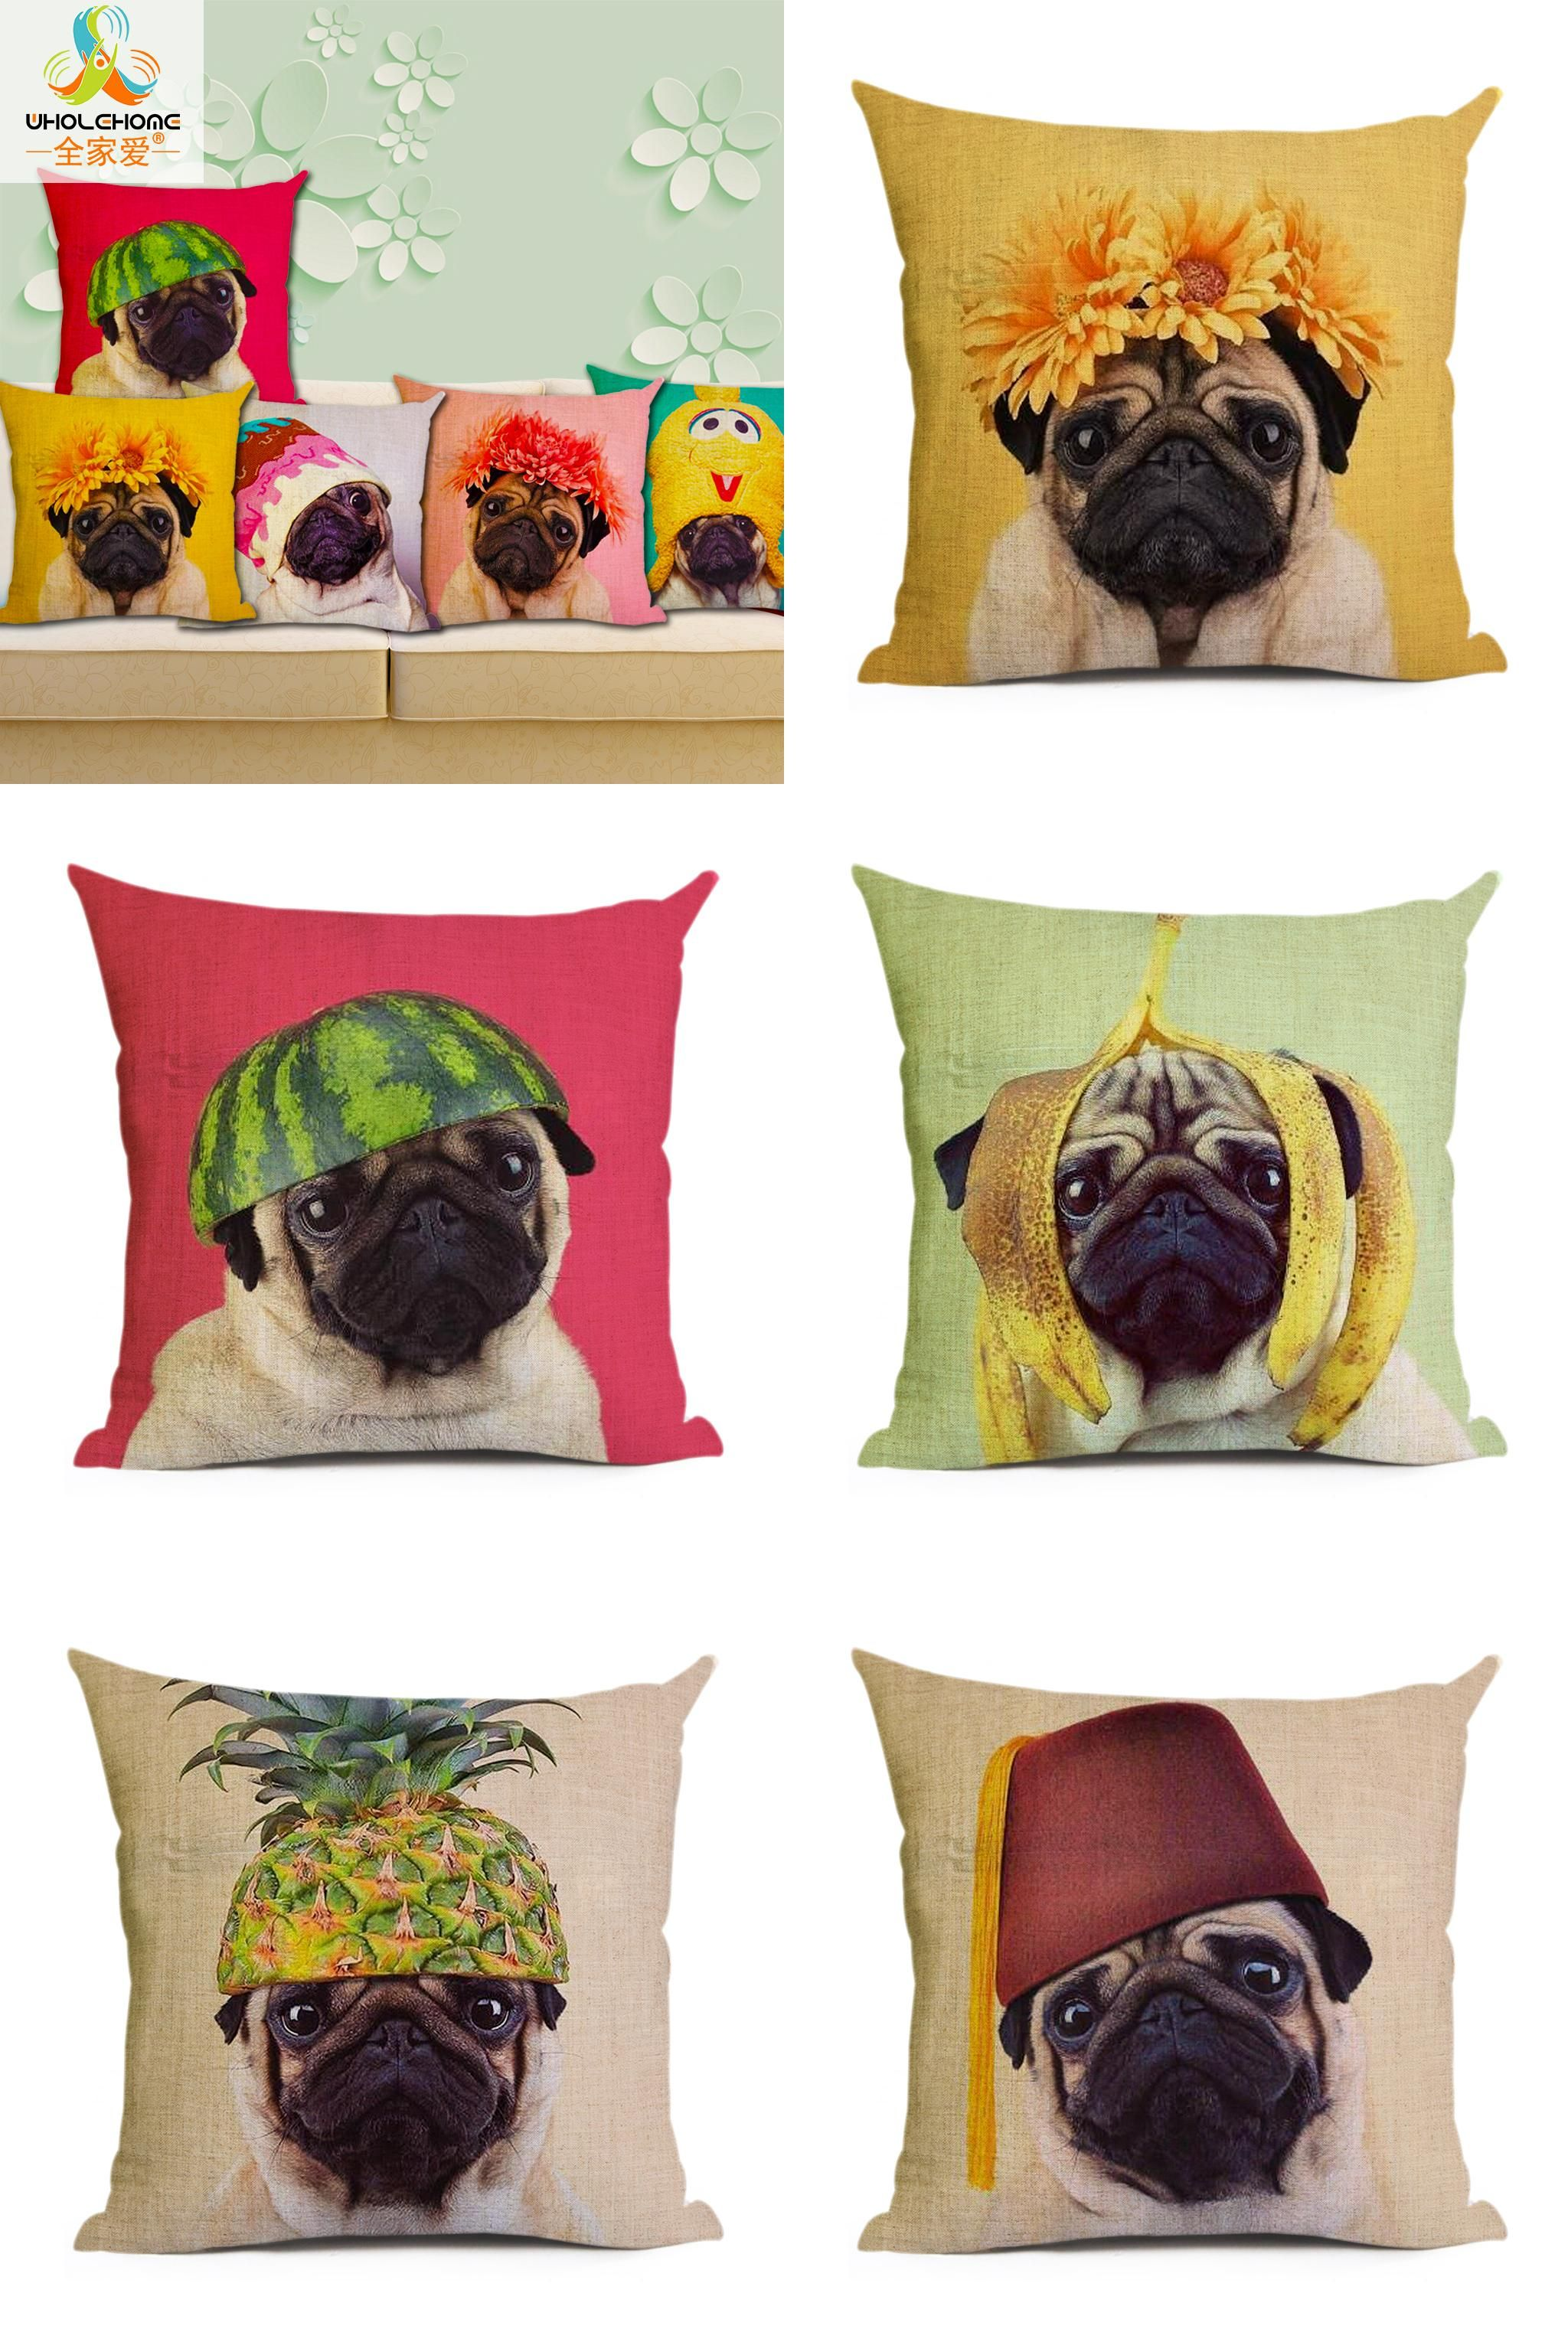 Visit to Buy] Animal cushion cover Dog for children Decorative